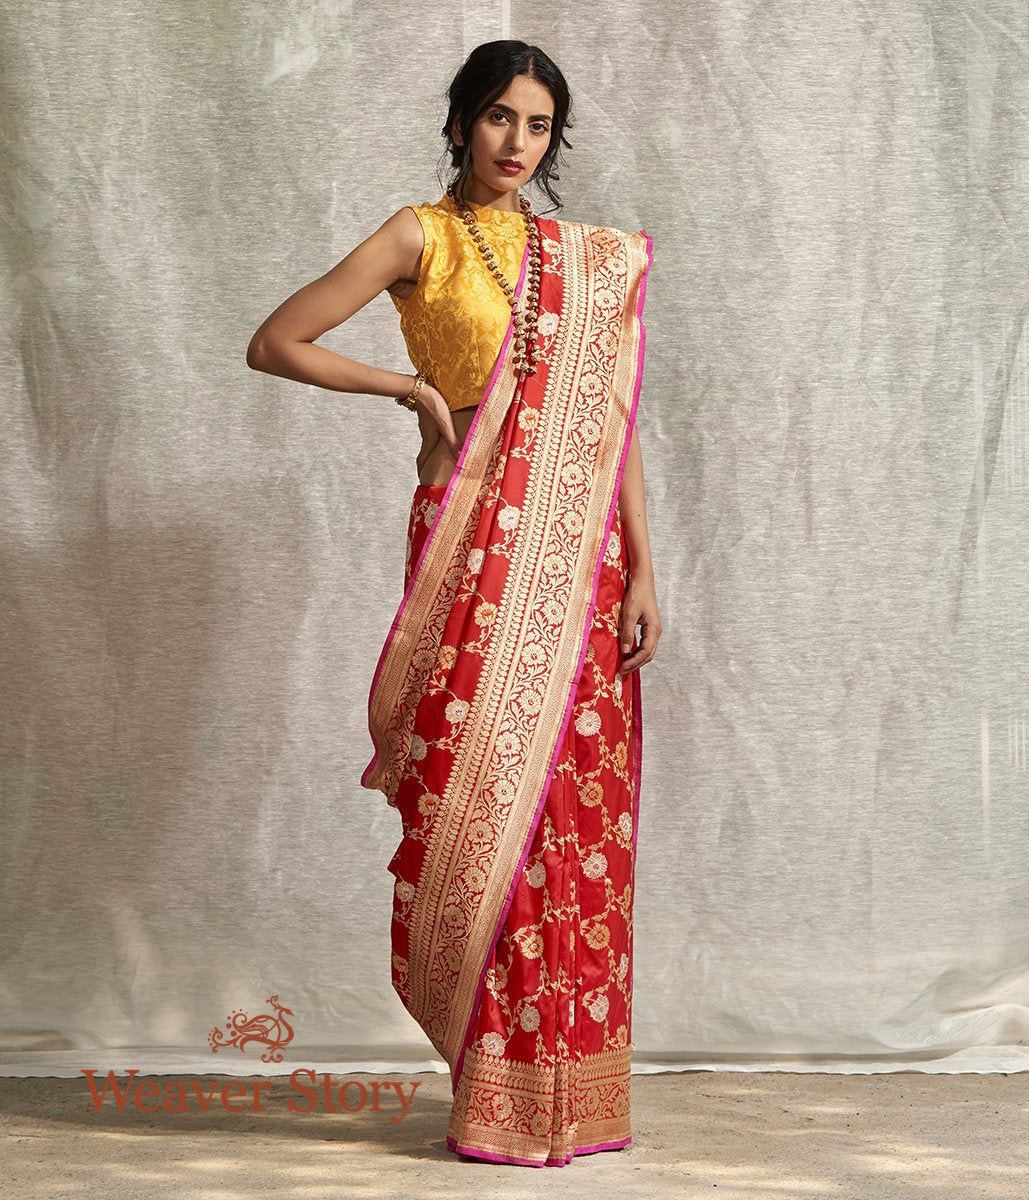 Handwoven Chilly Red Banarasi Jangla Saree with Meenakari